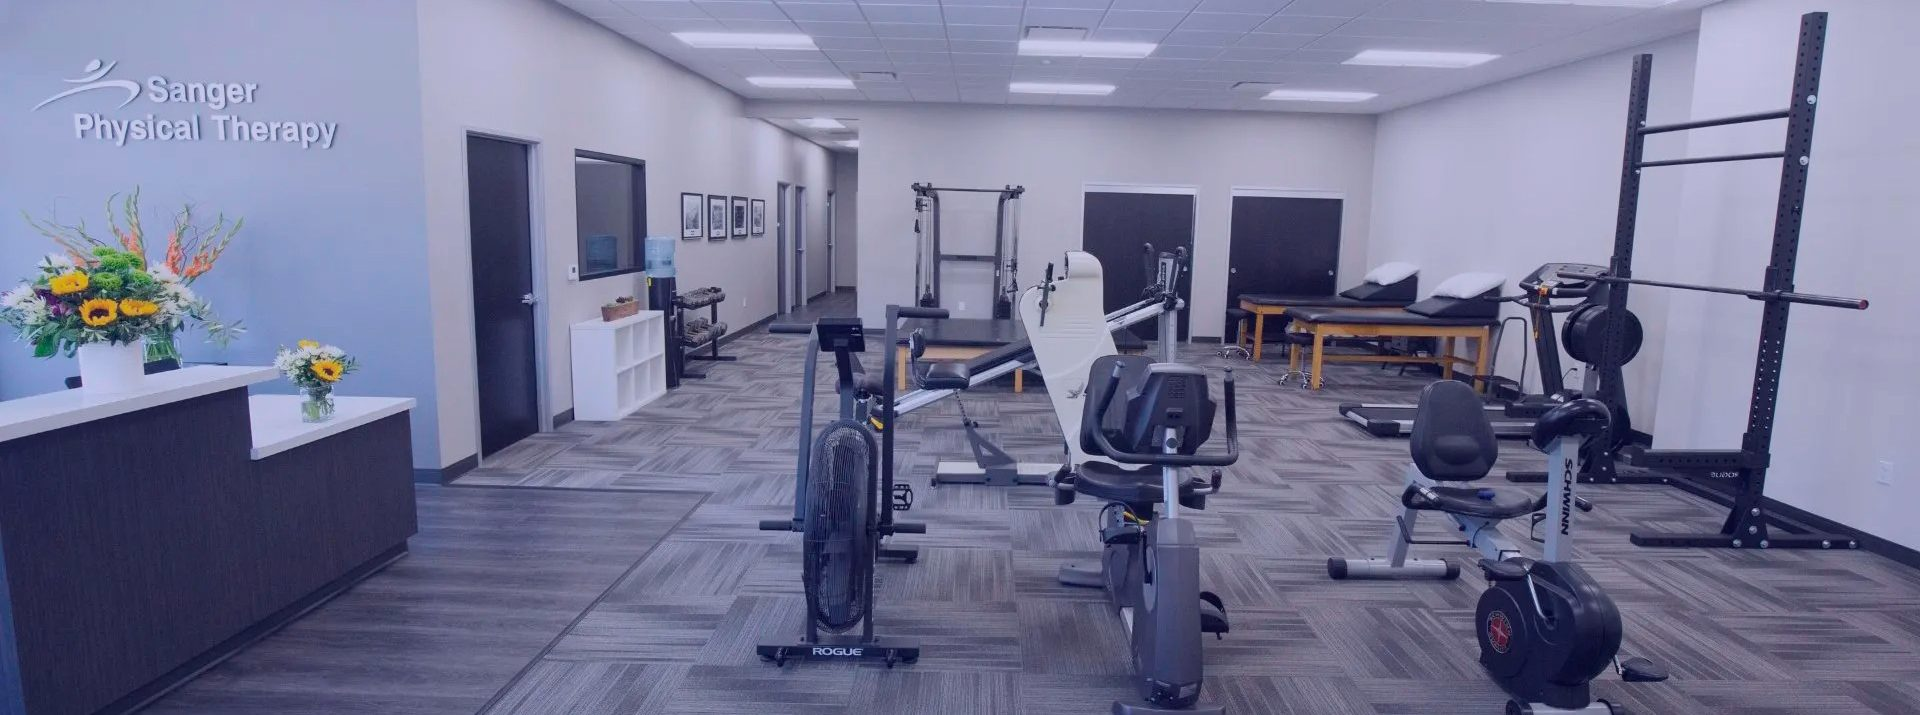 Sanger Physical Therapy Center for rehabilitation